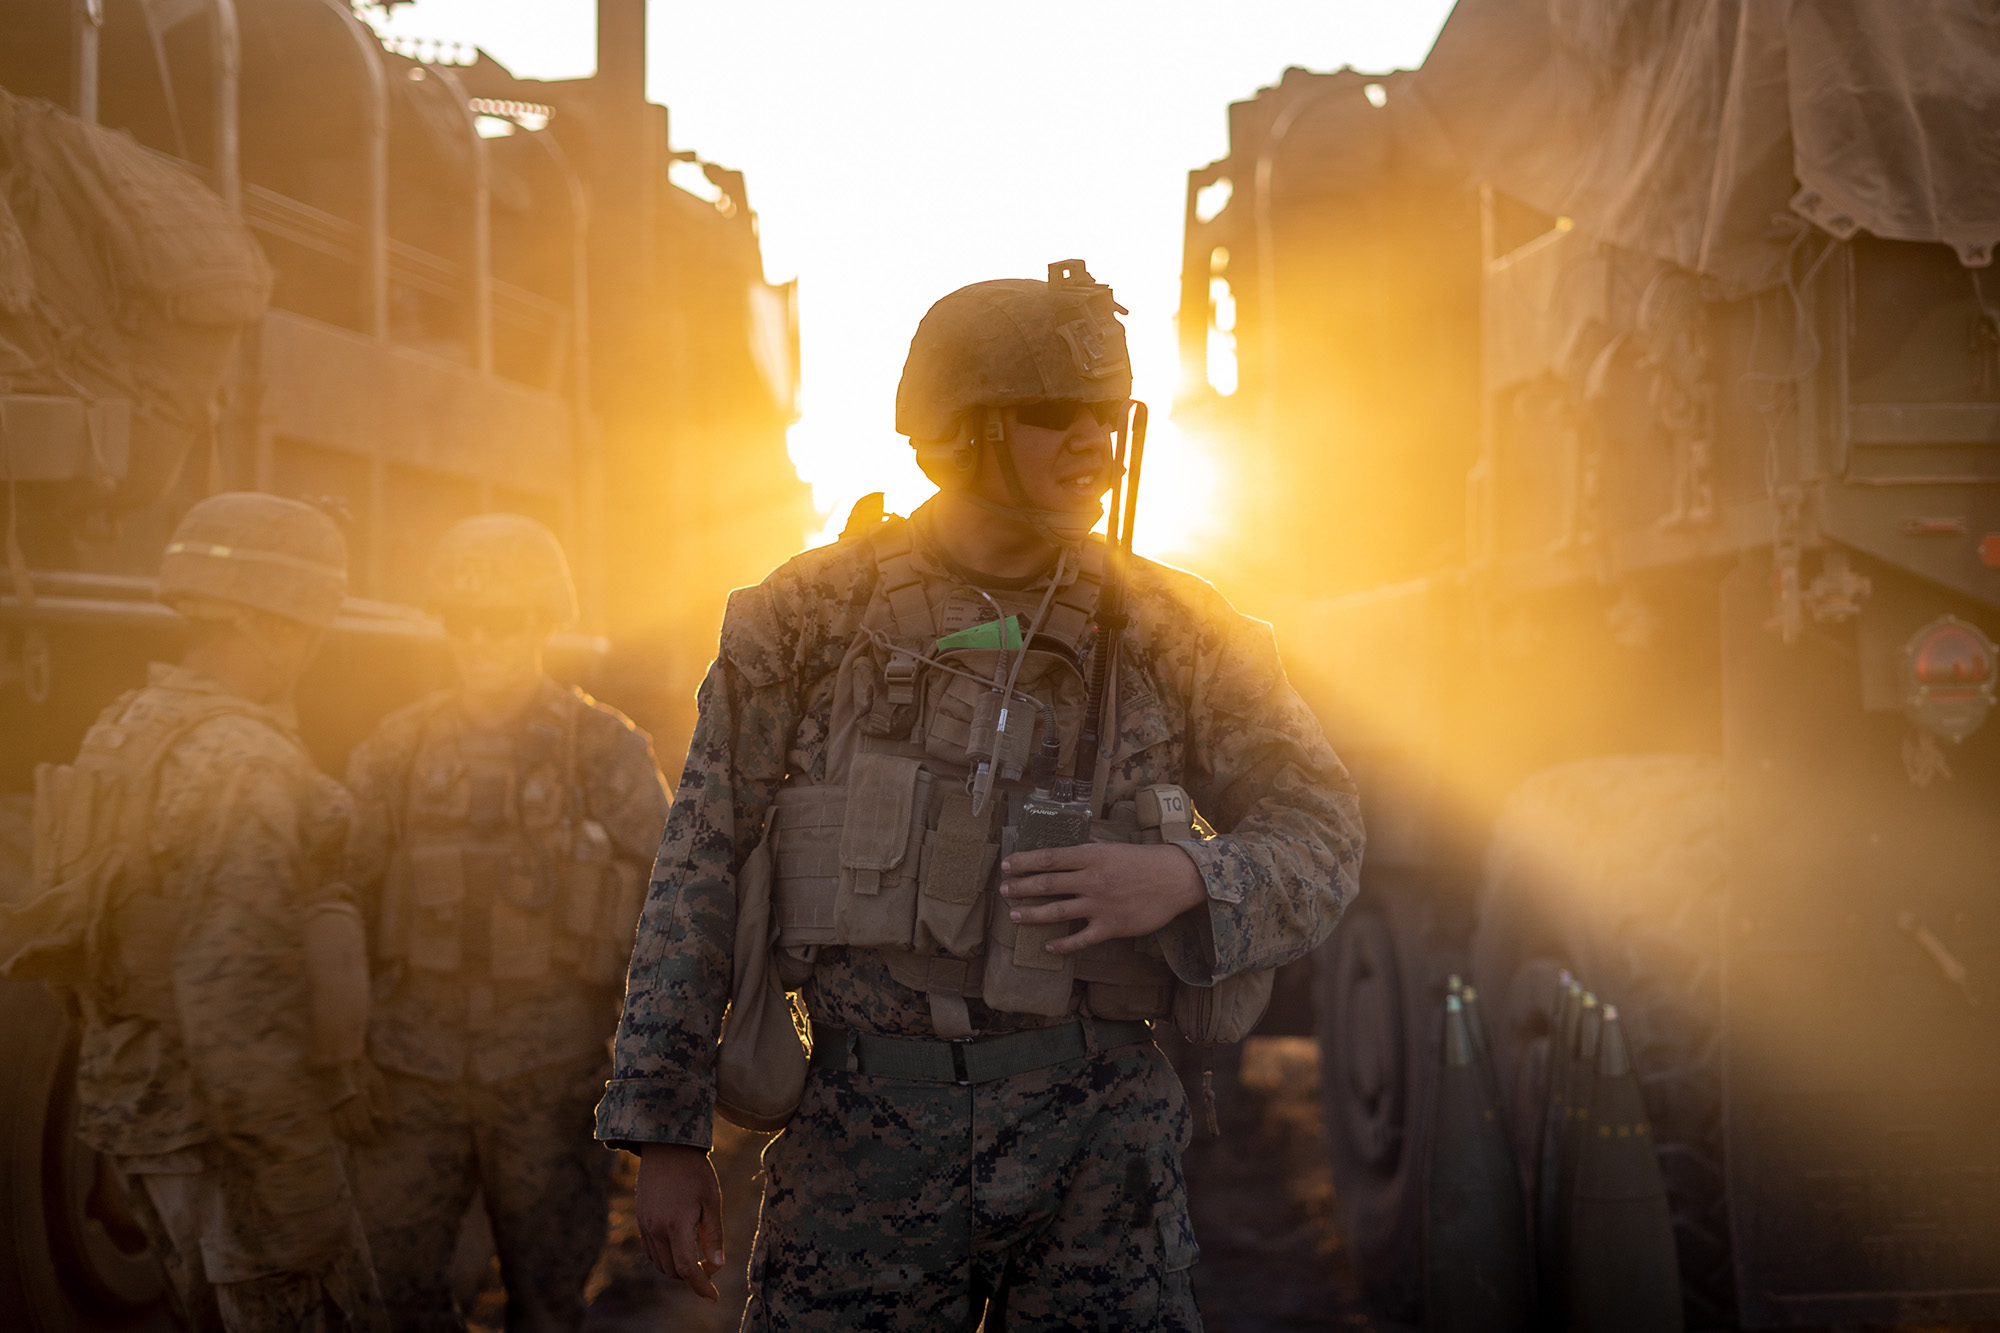 U.S. Marine Corps Sgt. David Galindo, a field artillery section chief with Ground Combat Element, Marine Rotational Force - Darwin, conducts live-fire training at Mount Bundey Training Area, Northern Territory, Australia, Aug. 8, 2020. (Cpl. Sarah Marshall/Marine Corps)